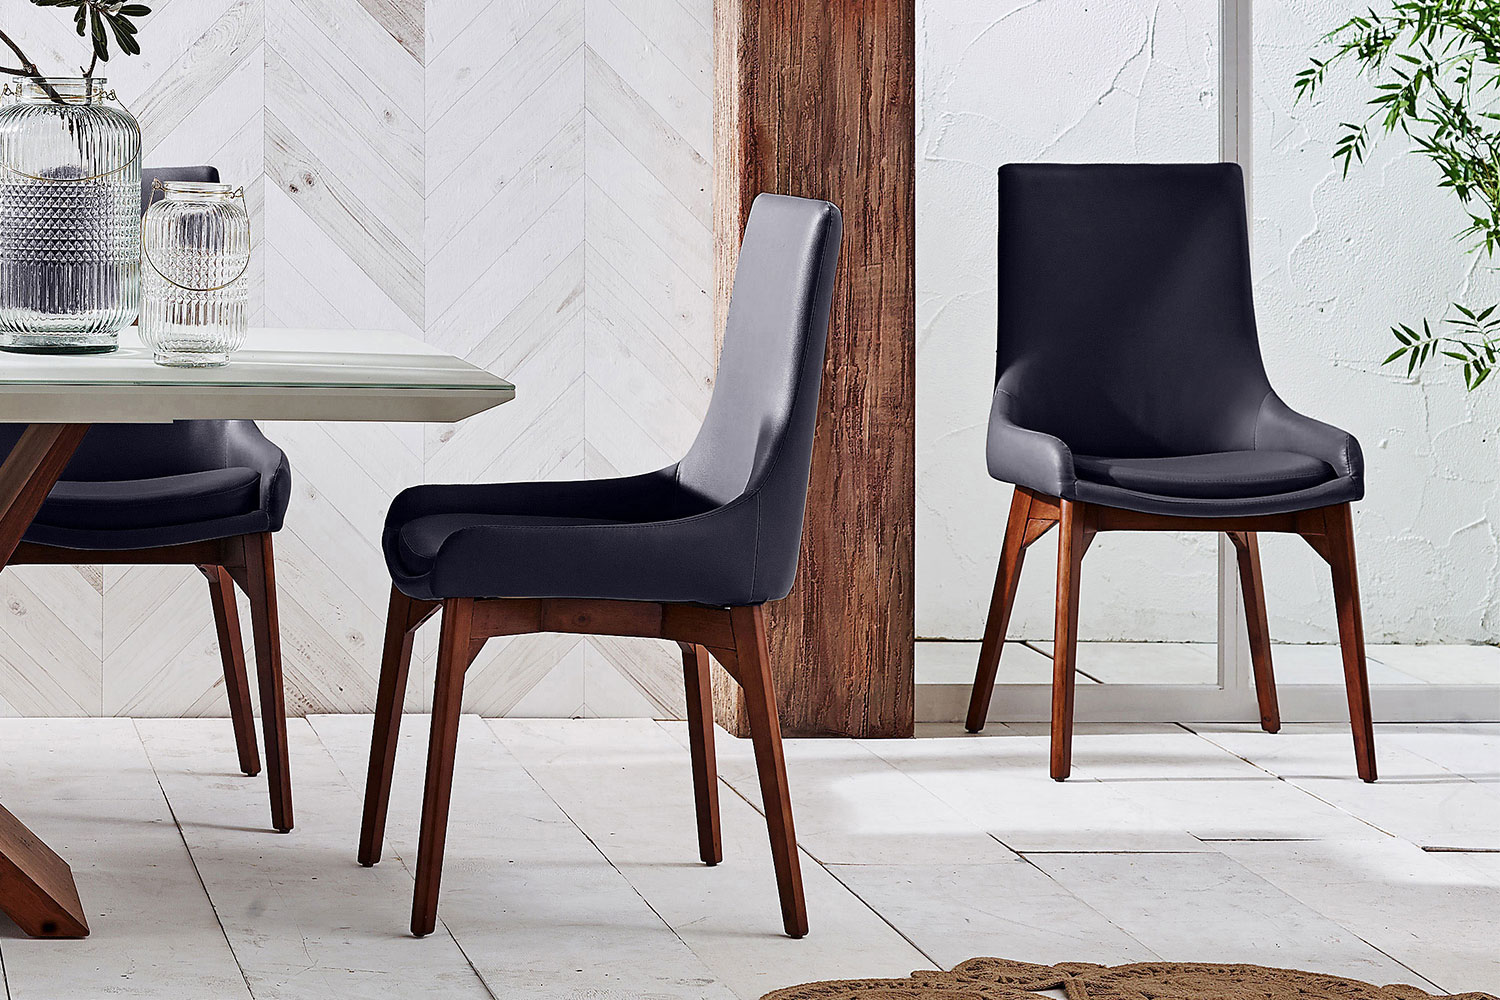 dining chairs nz indoor hanging bubble chair harvey norman new zealand moderna by insato furniture